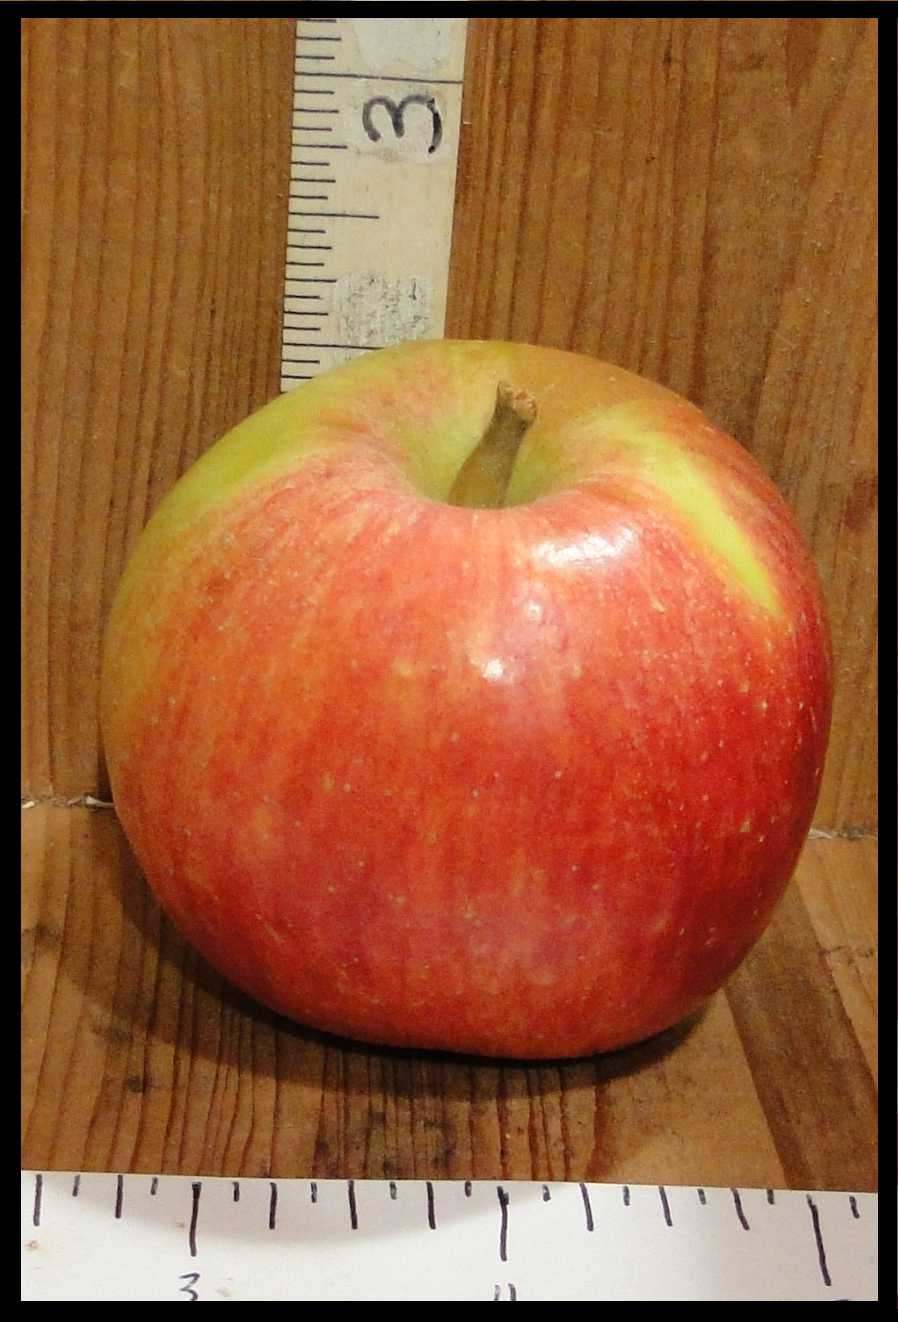 yellow apple with red blush and streaking